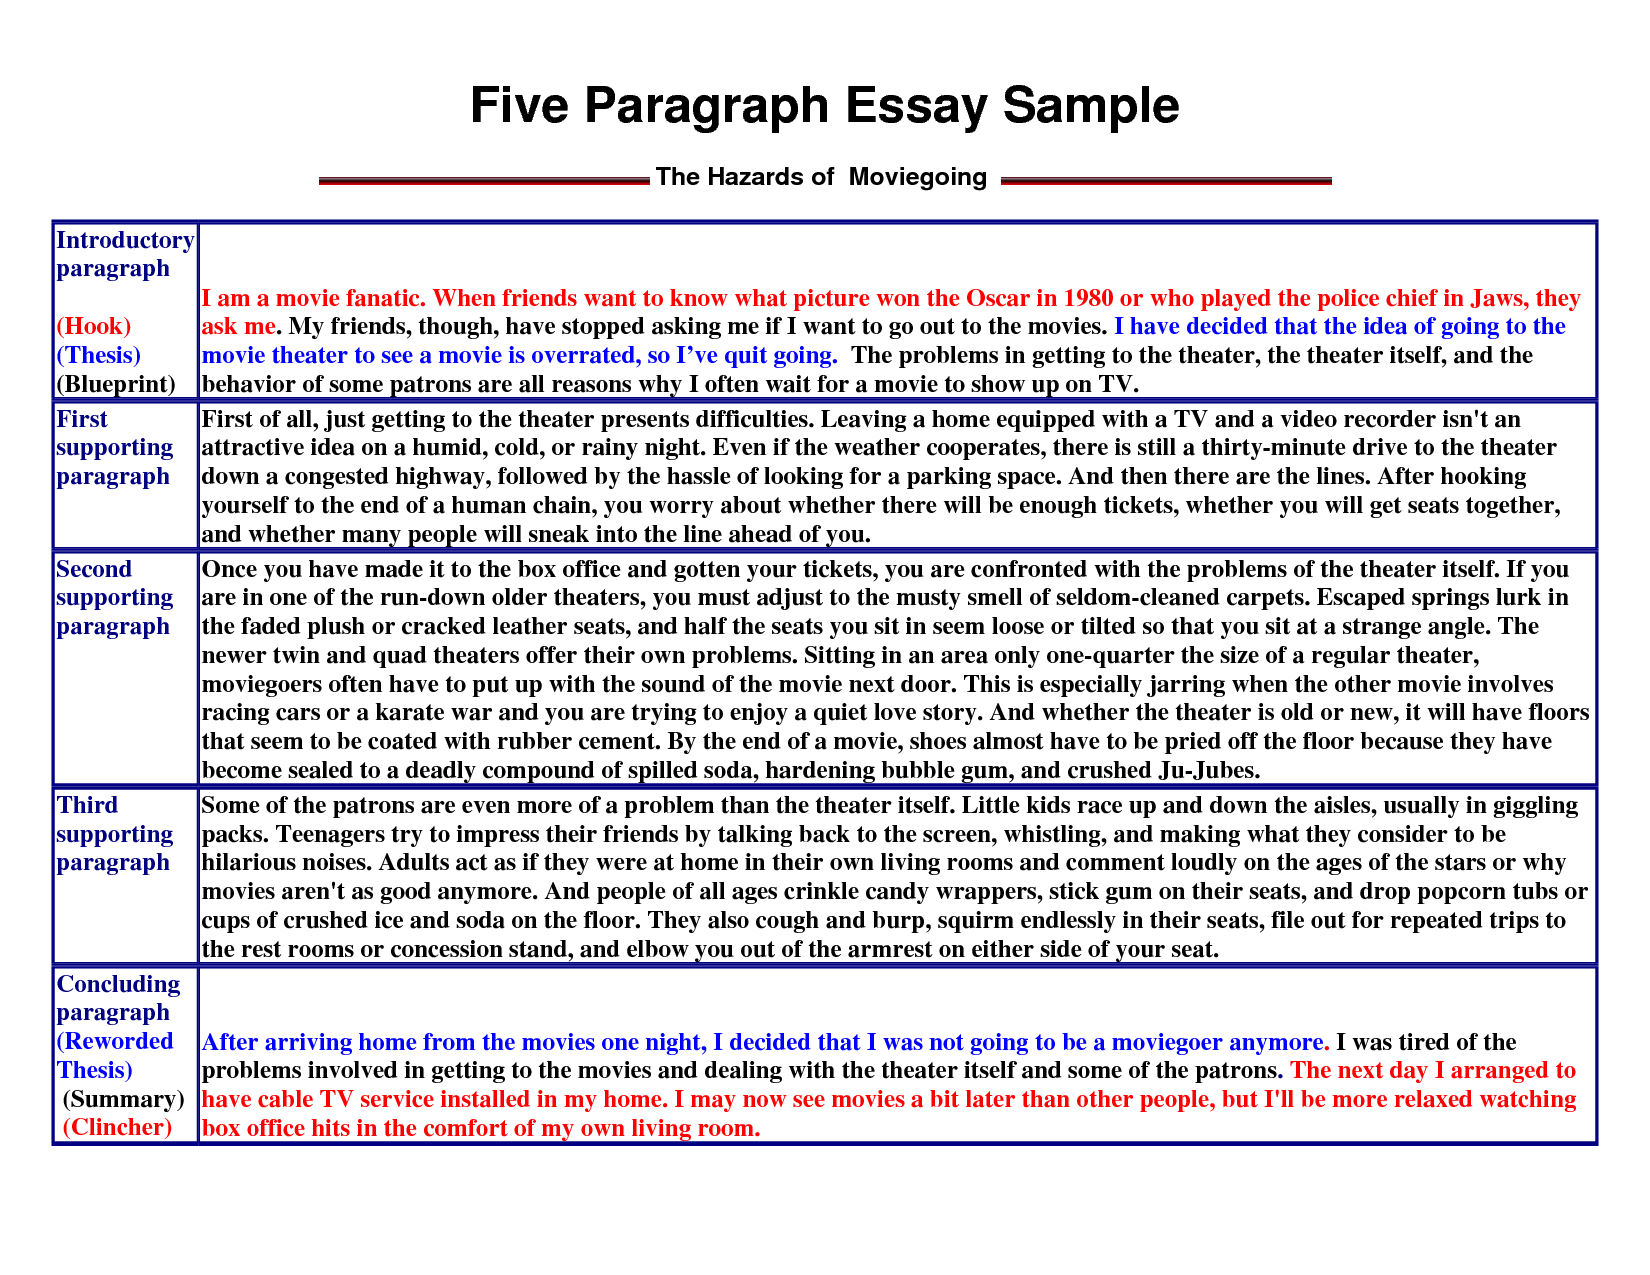 016 Paragraph Essay Singular 5 Template Graphic Organizer Middle School Pdf College Full